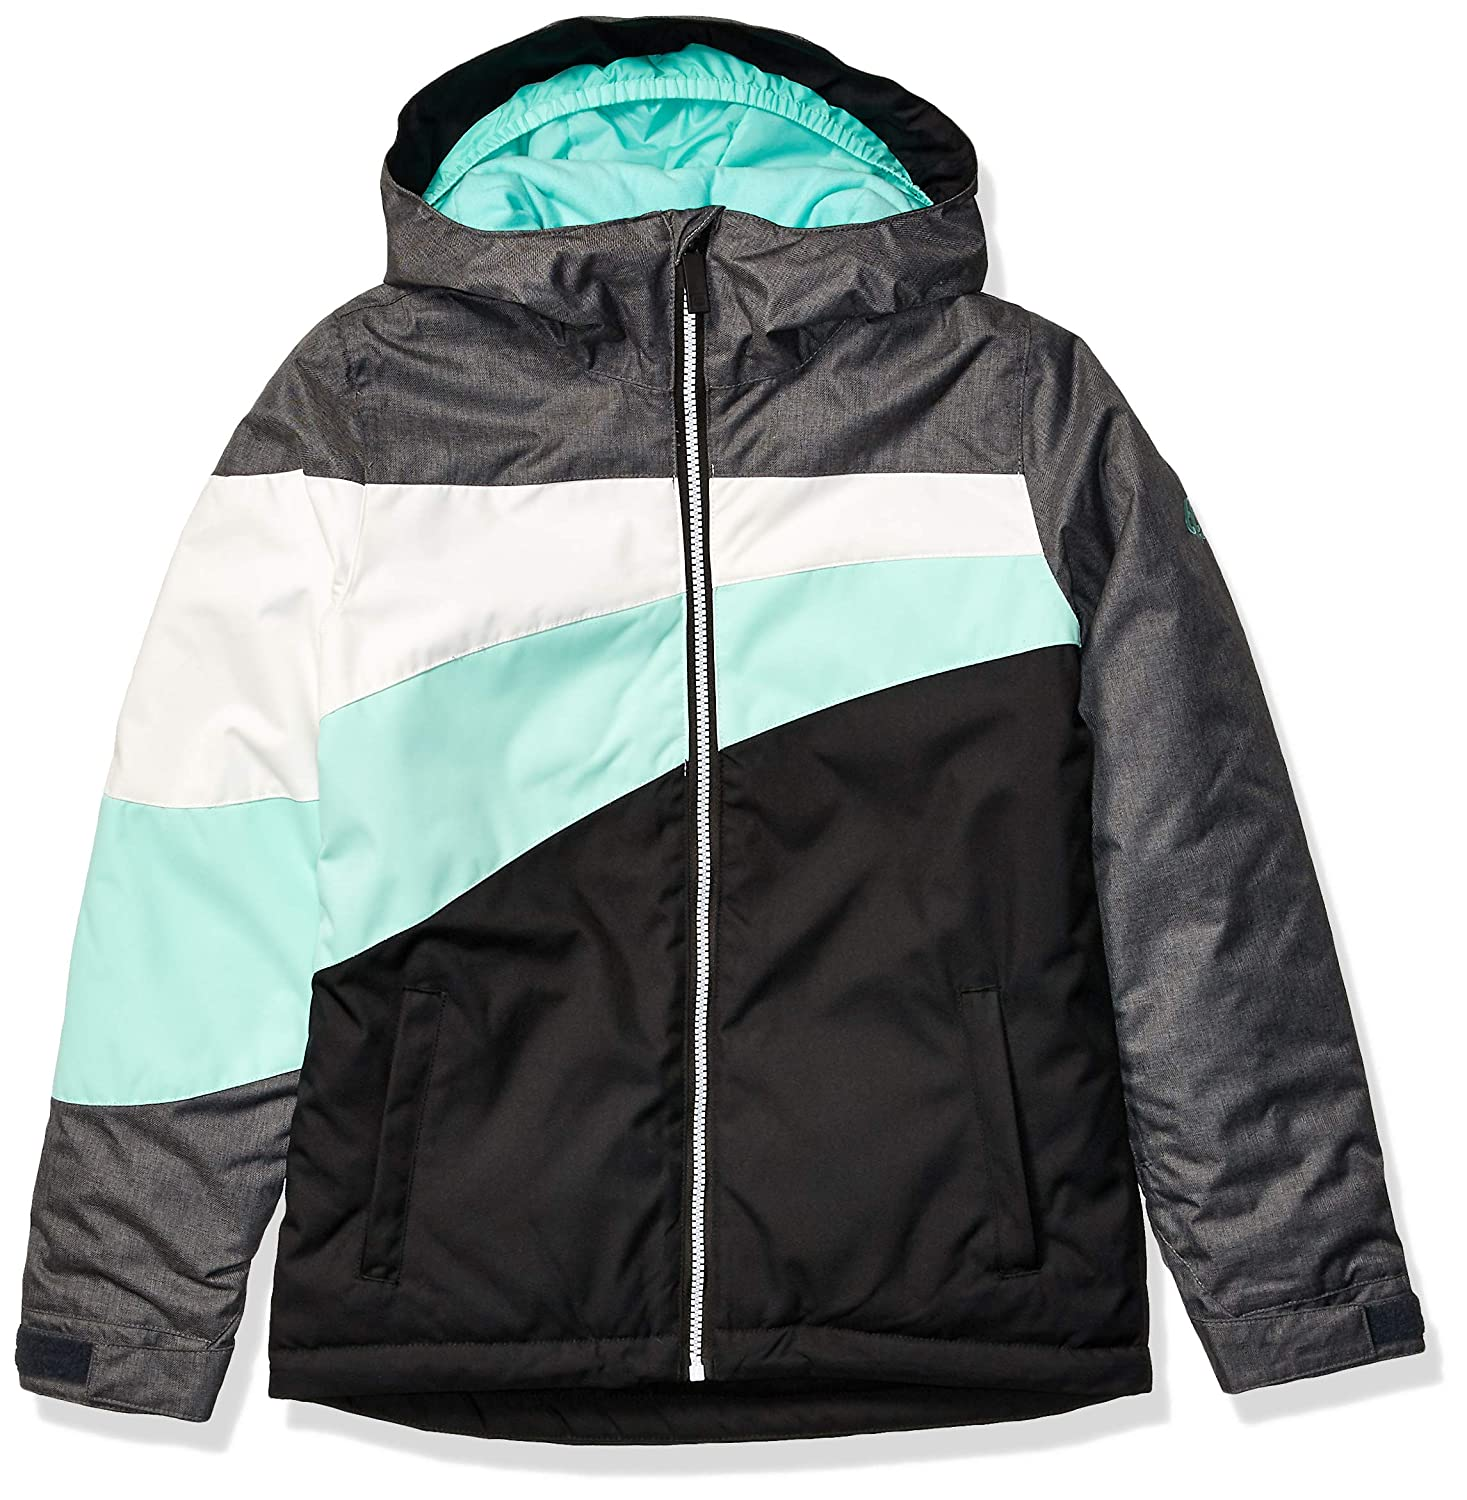 Image of 686 Girls 100% Polyester Water- Proof Woven Jacket